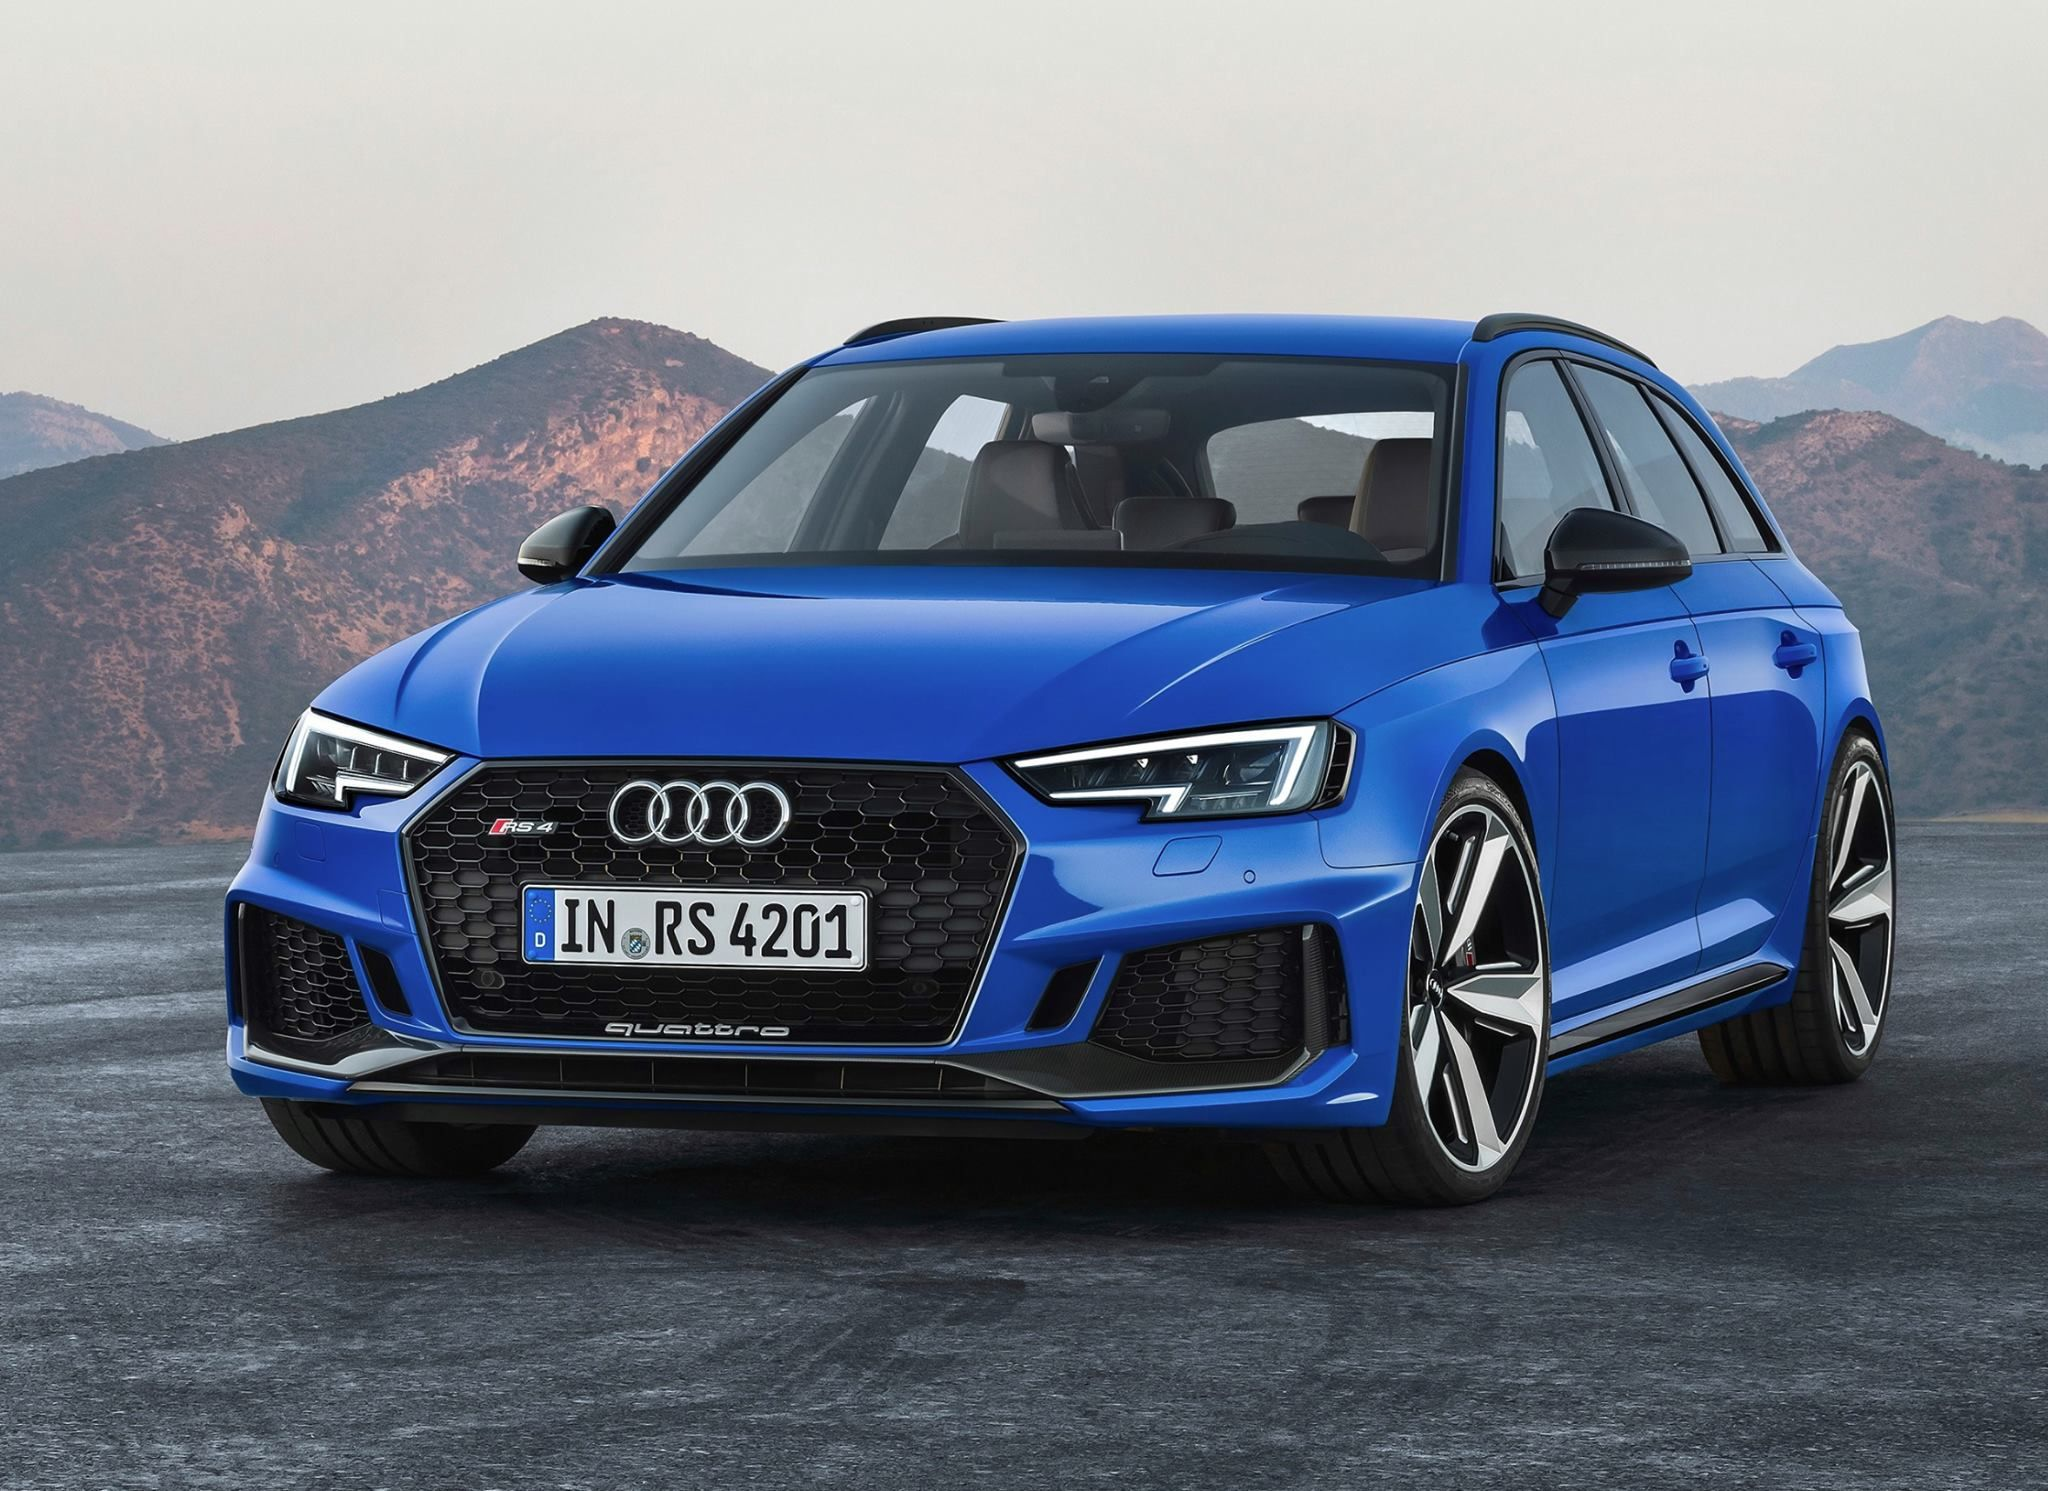 2018 audi rs 4 avant audi a4 avant pinterest audi rs audi a4 and cars. Black Bedroom Furniture Sets. Home Design Ideas